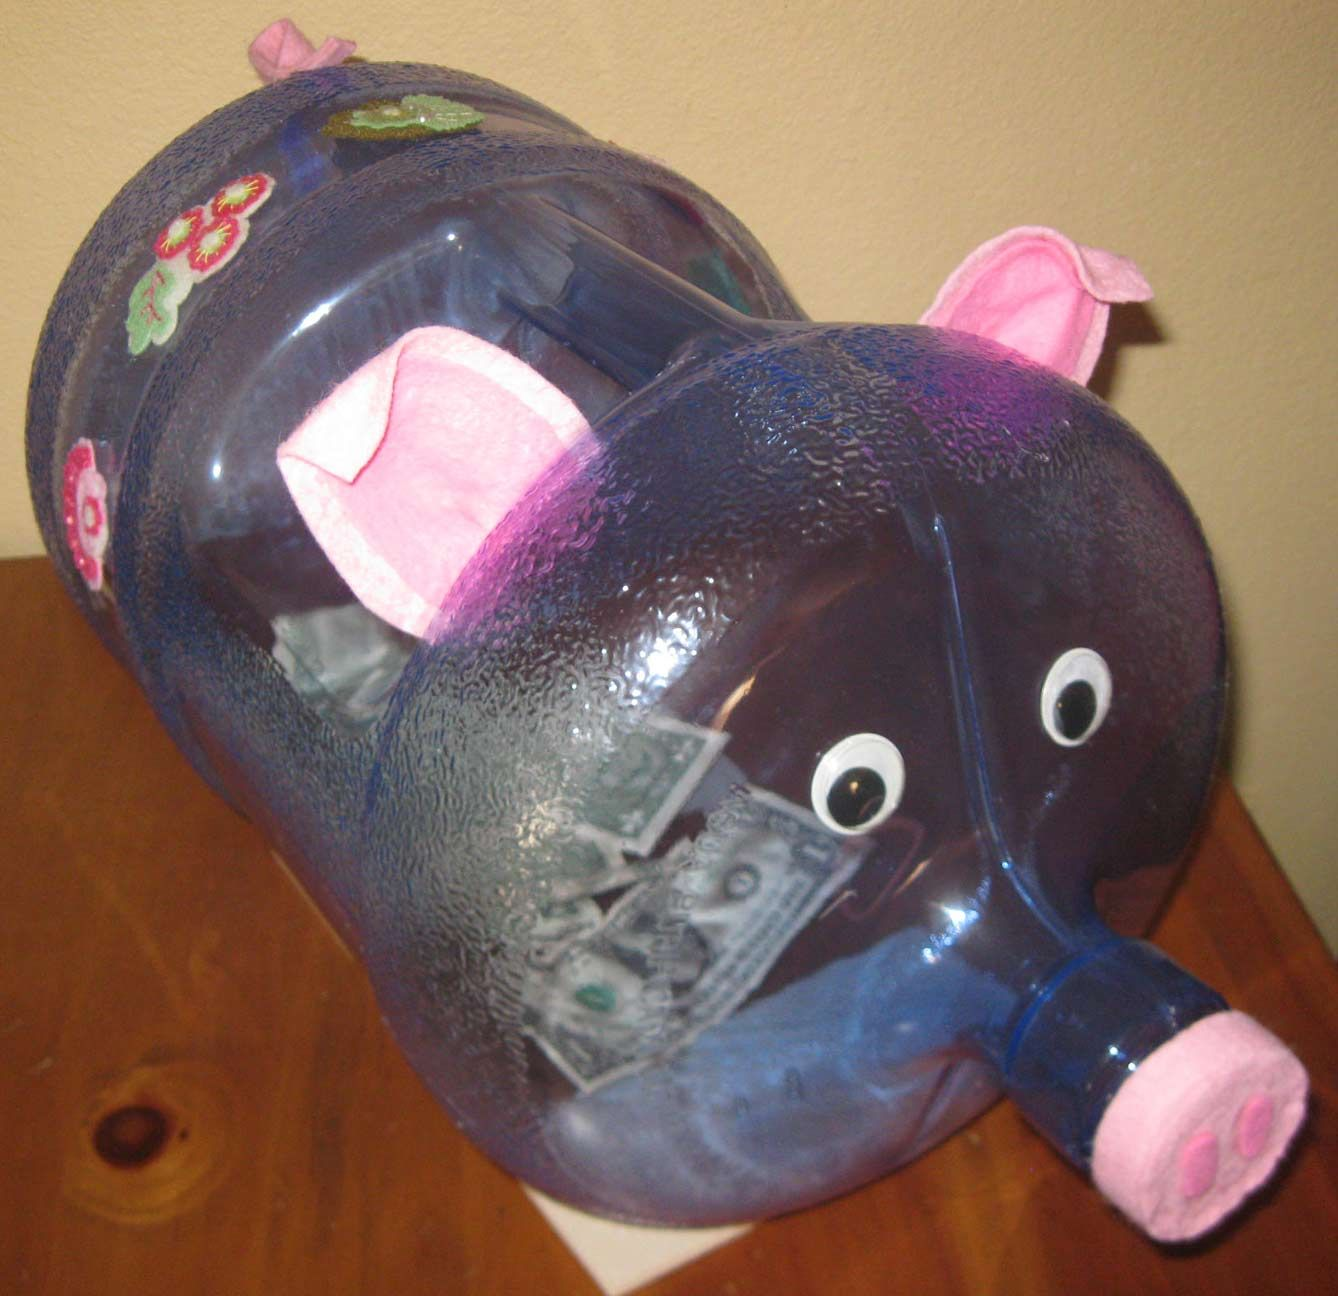 Piggy Bank Idea Diy Homemade Giant Piggy Bank Unique Piggy Banks Pinterest